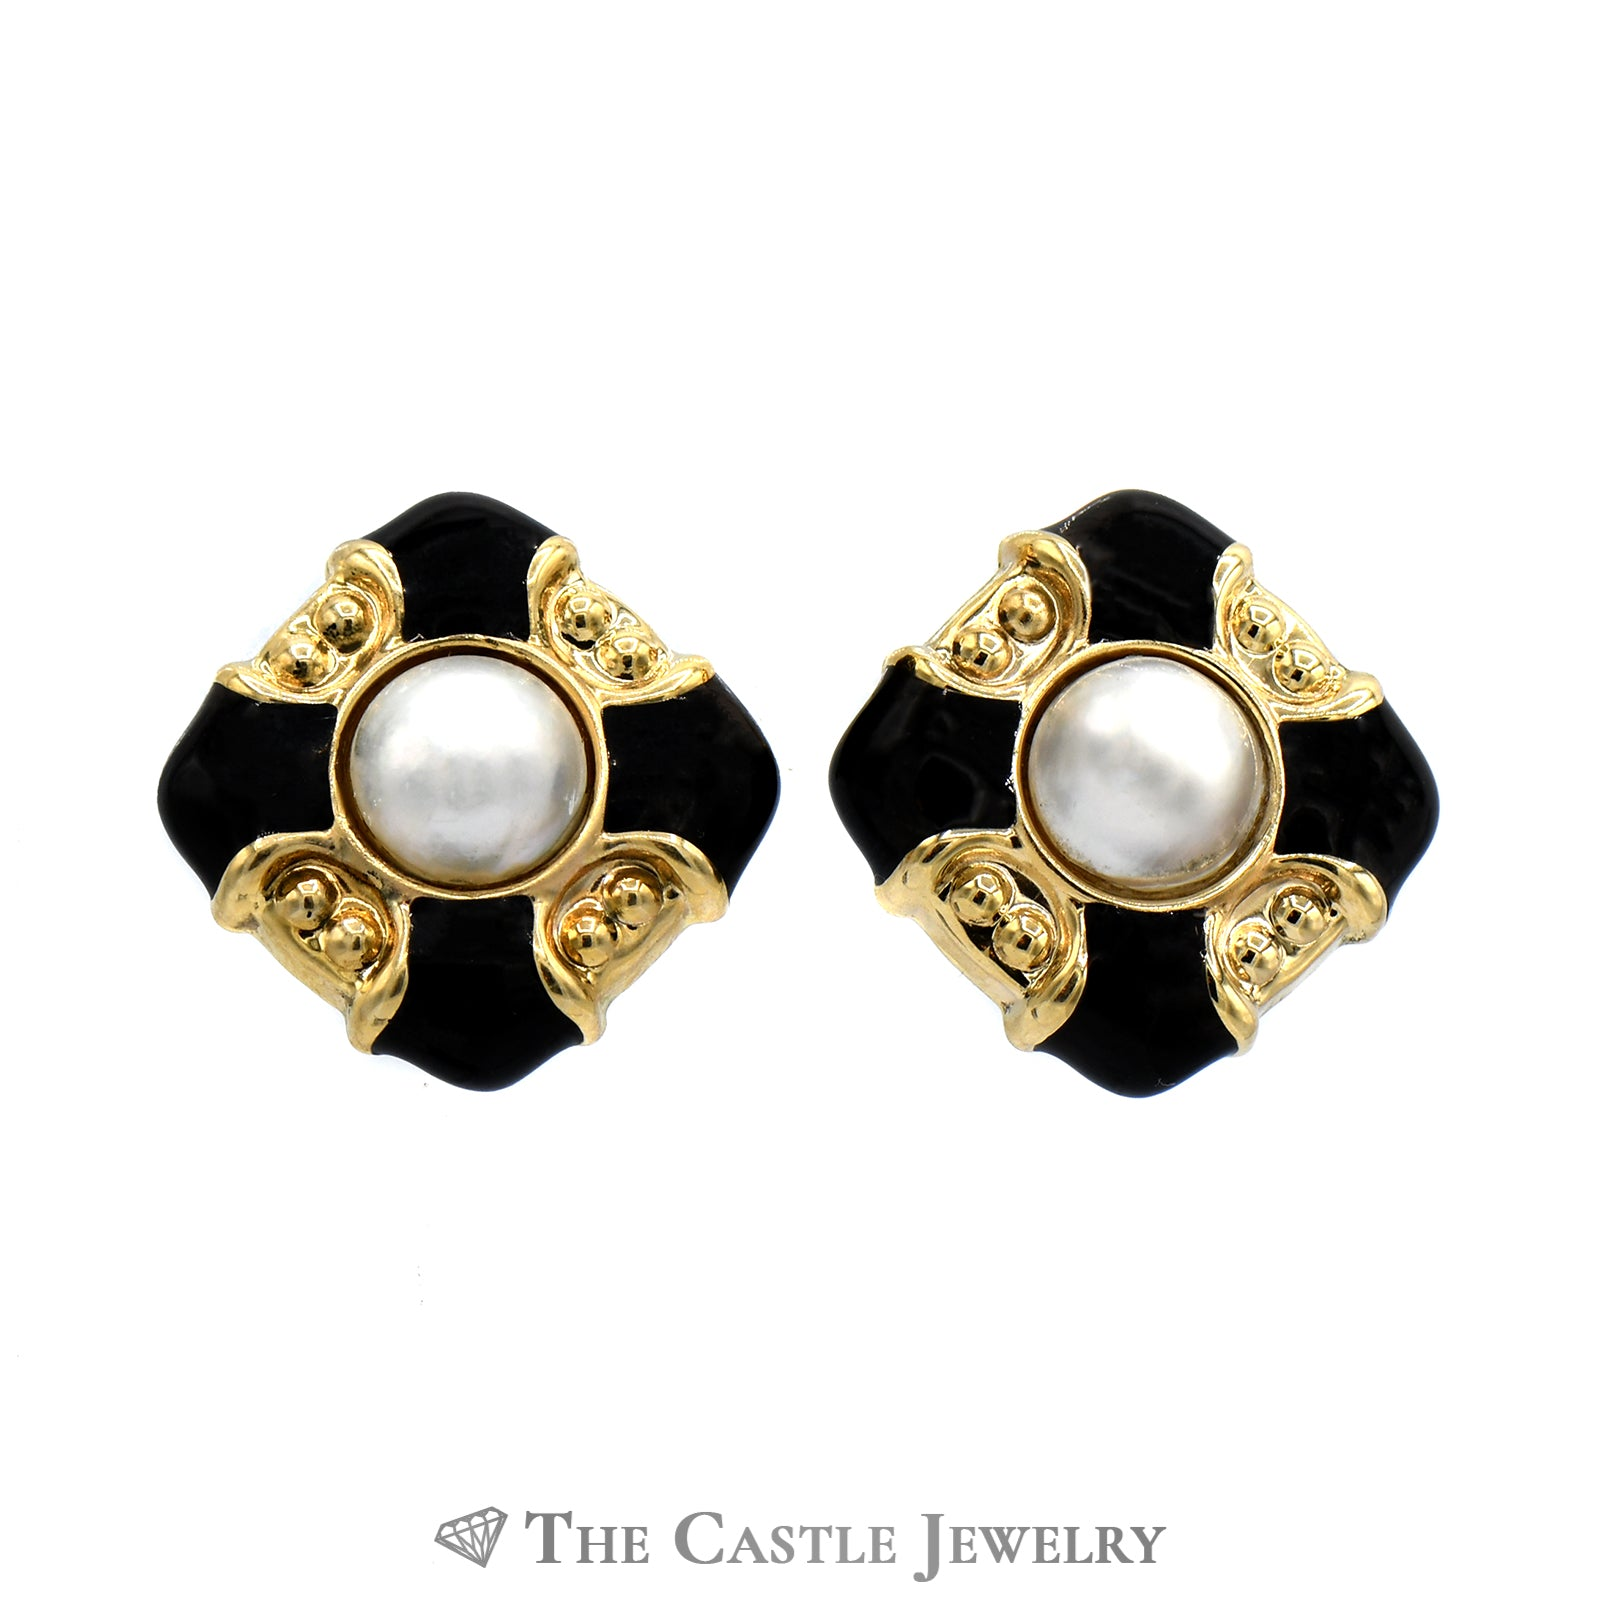 Mabe Pearl And Black Enamel Earrings In 14K Yellow Gold